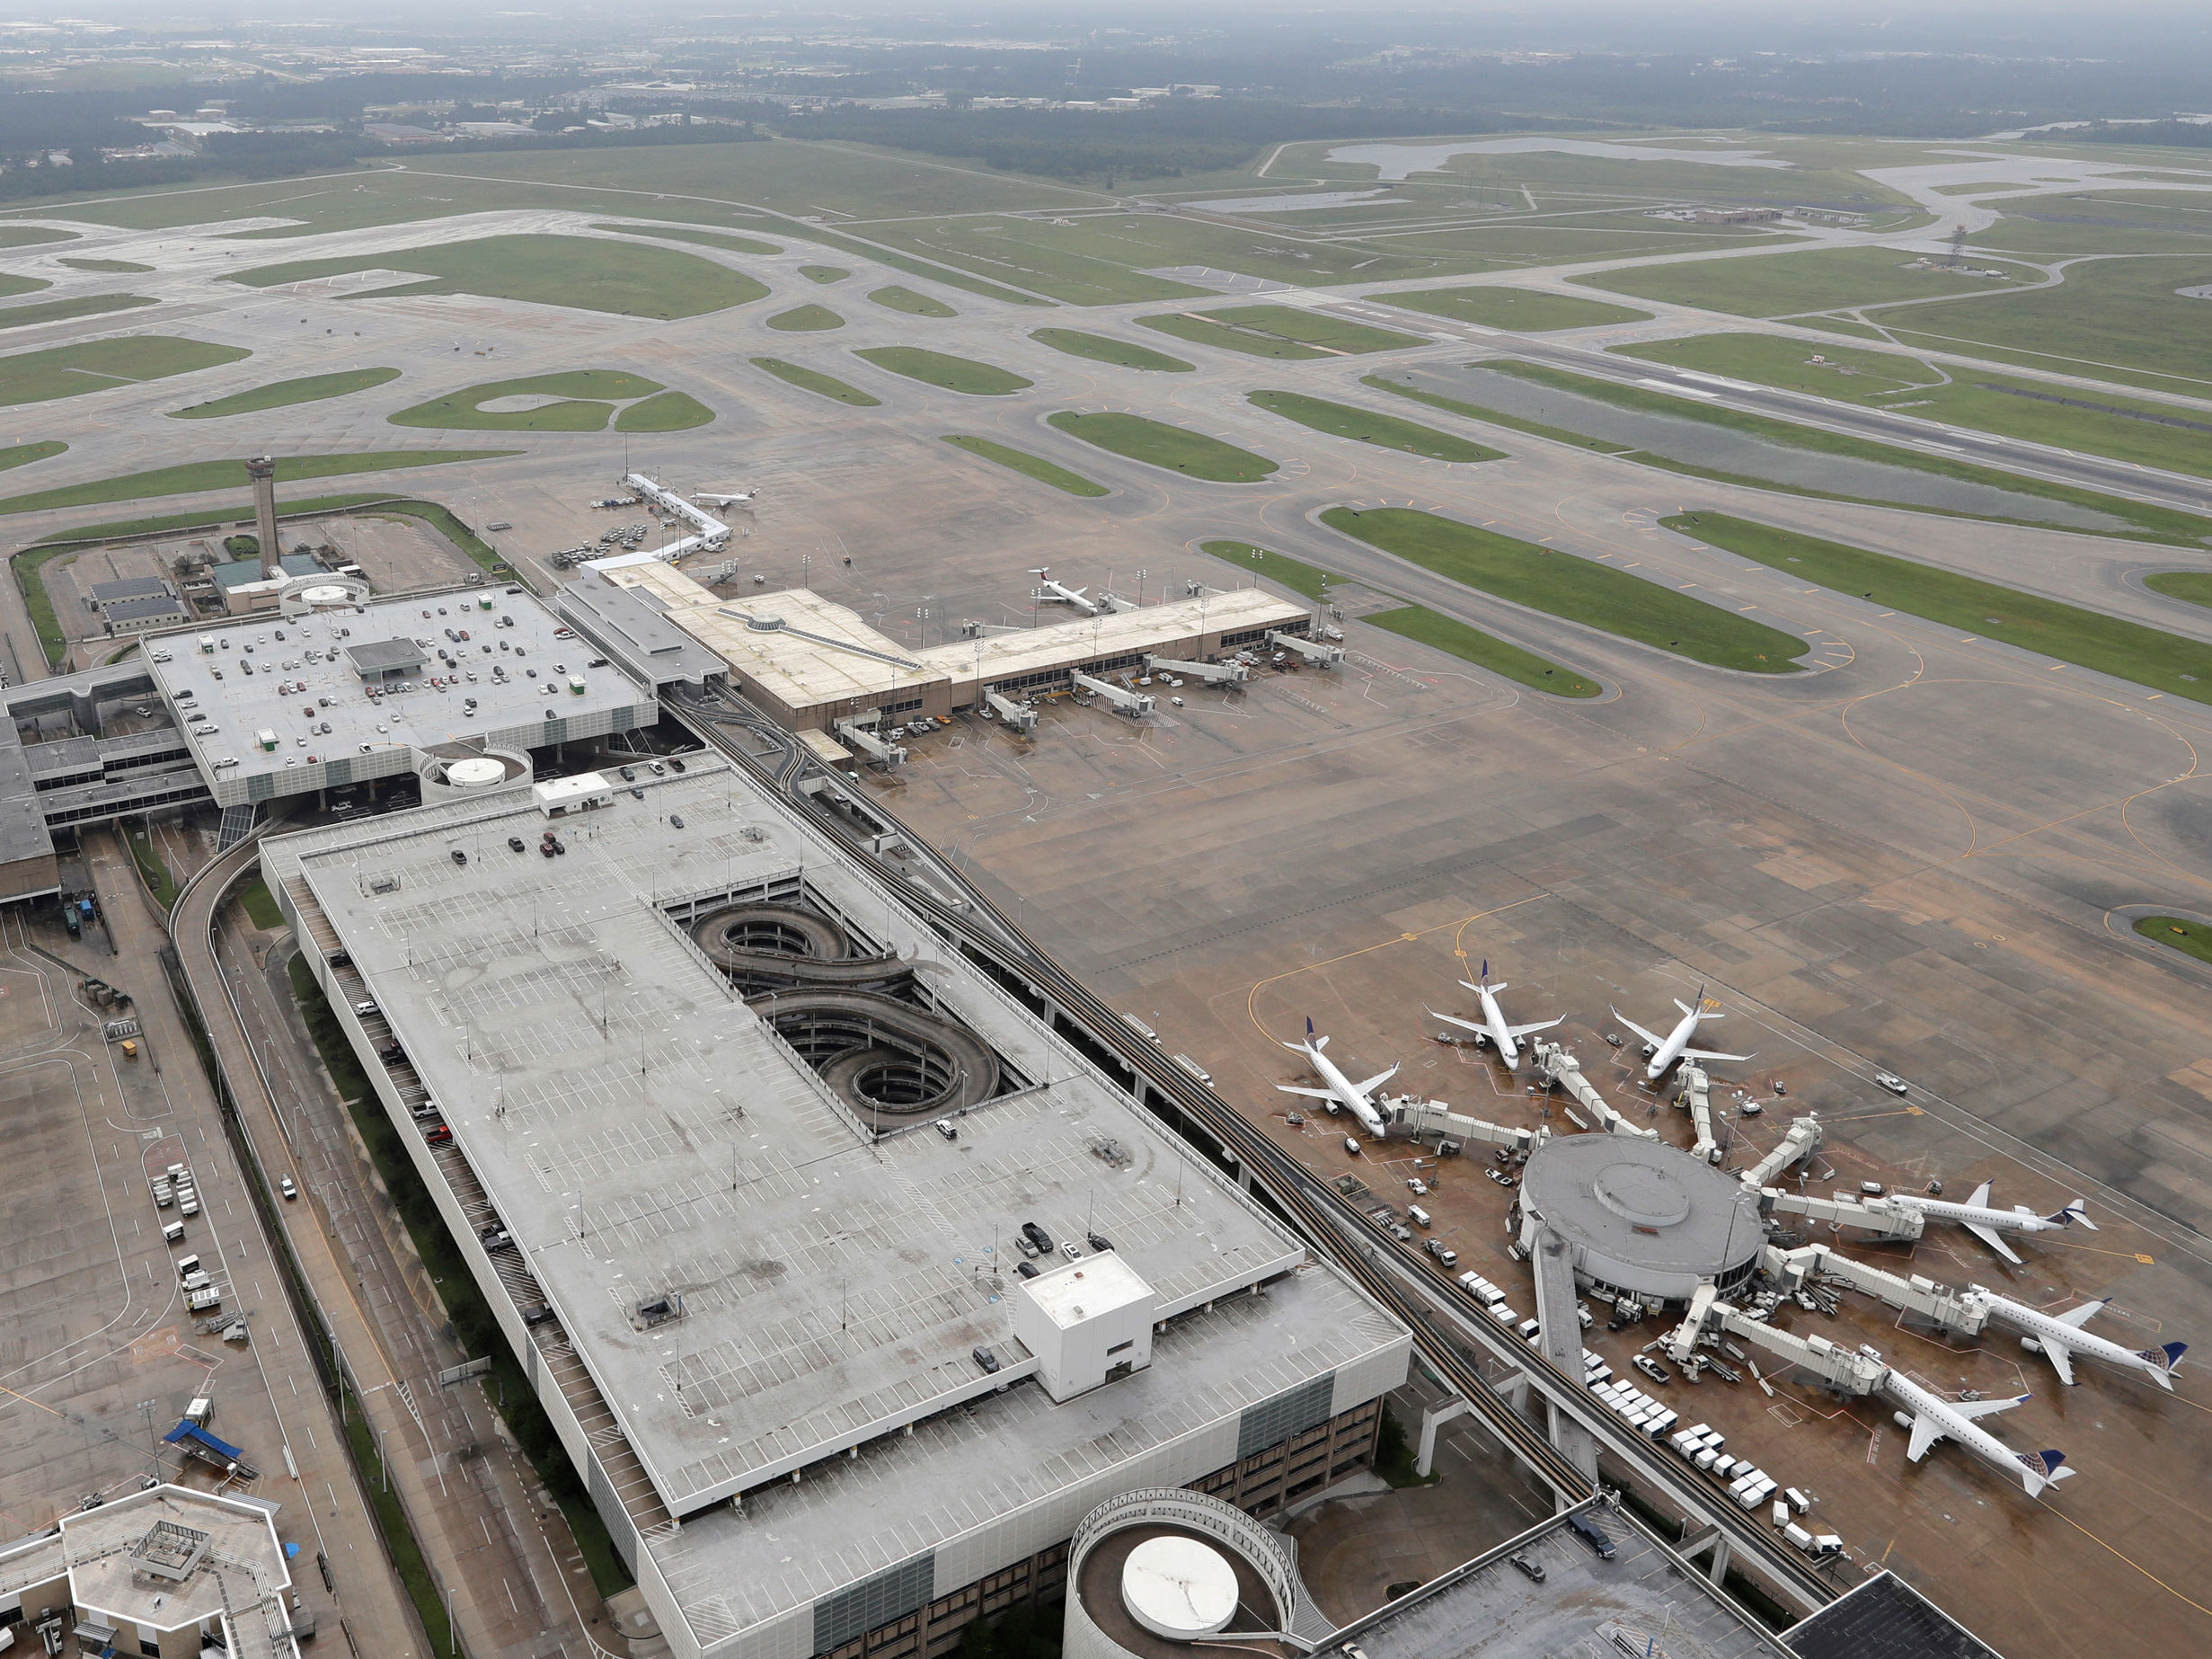 Runways Flooded At Houston Hobby Airport, Flights Canceled